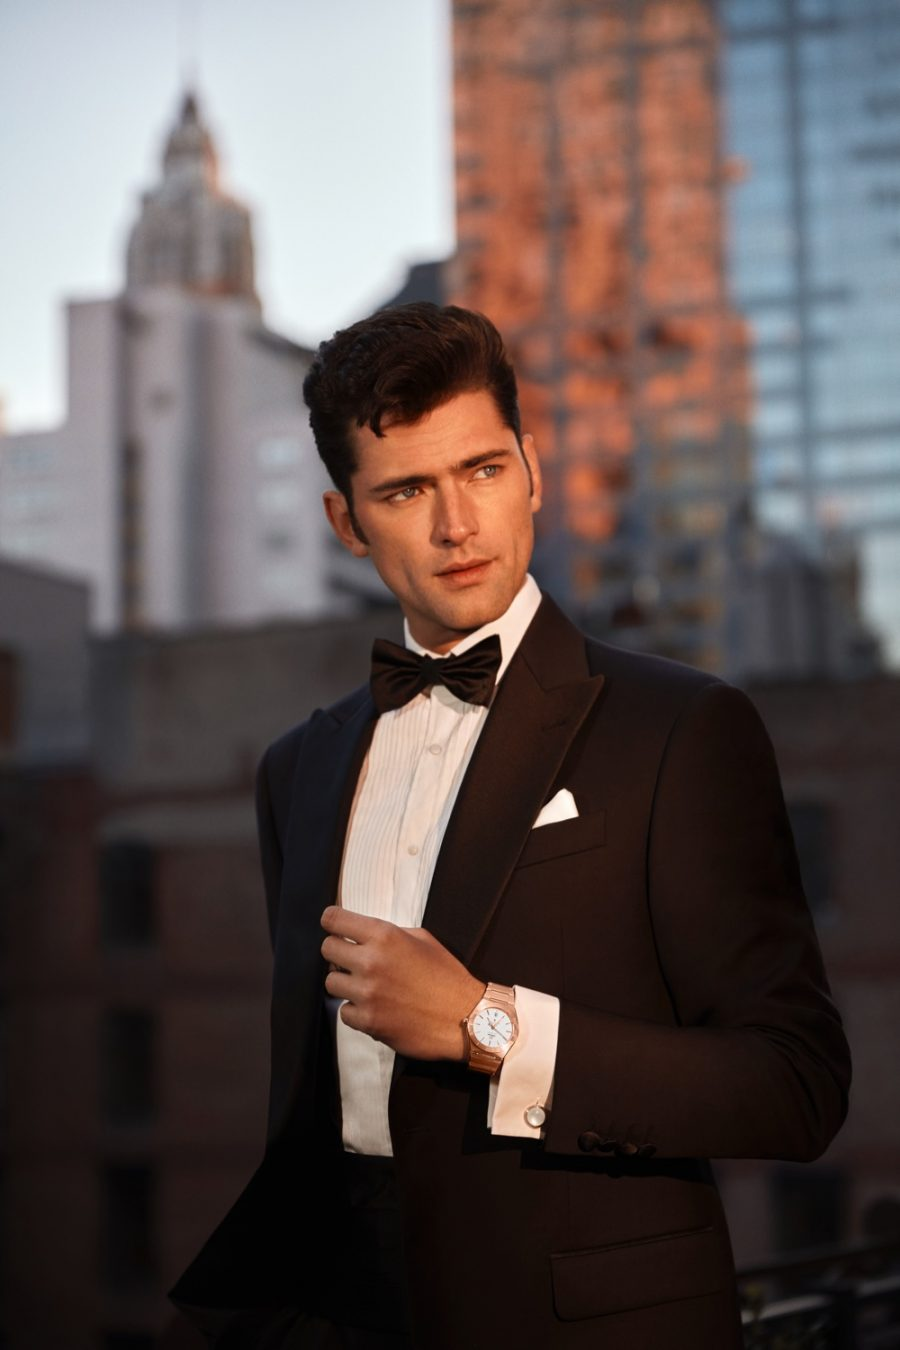 Front and center, Sean O'Pry models OMEGA's Constellation Gent 39mm watch for the brand's social media campaign.